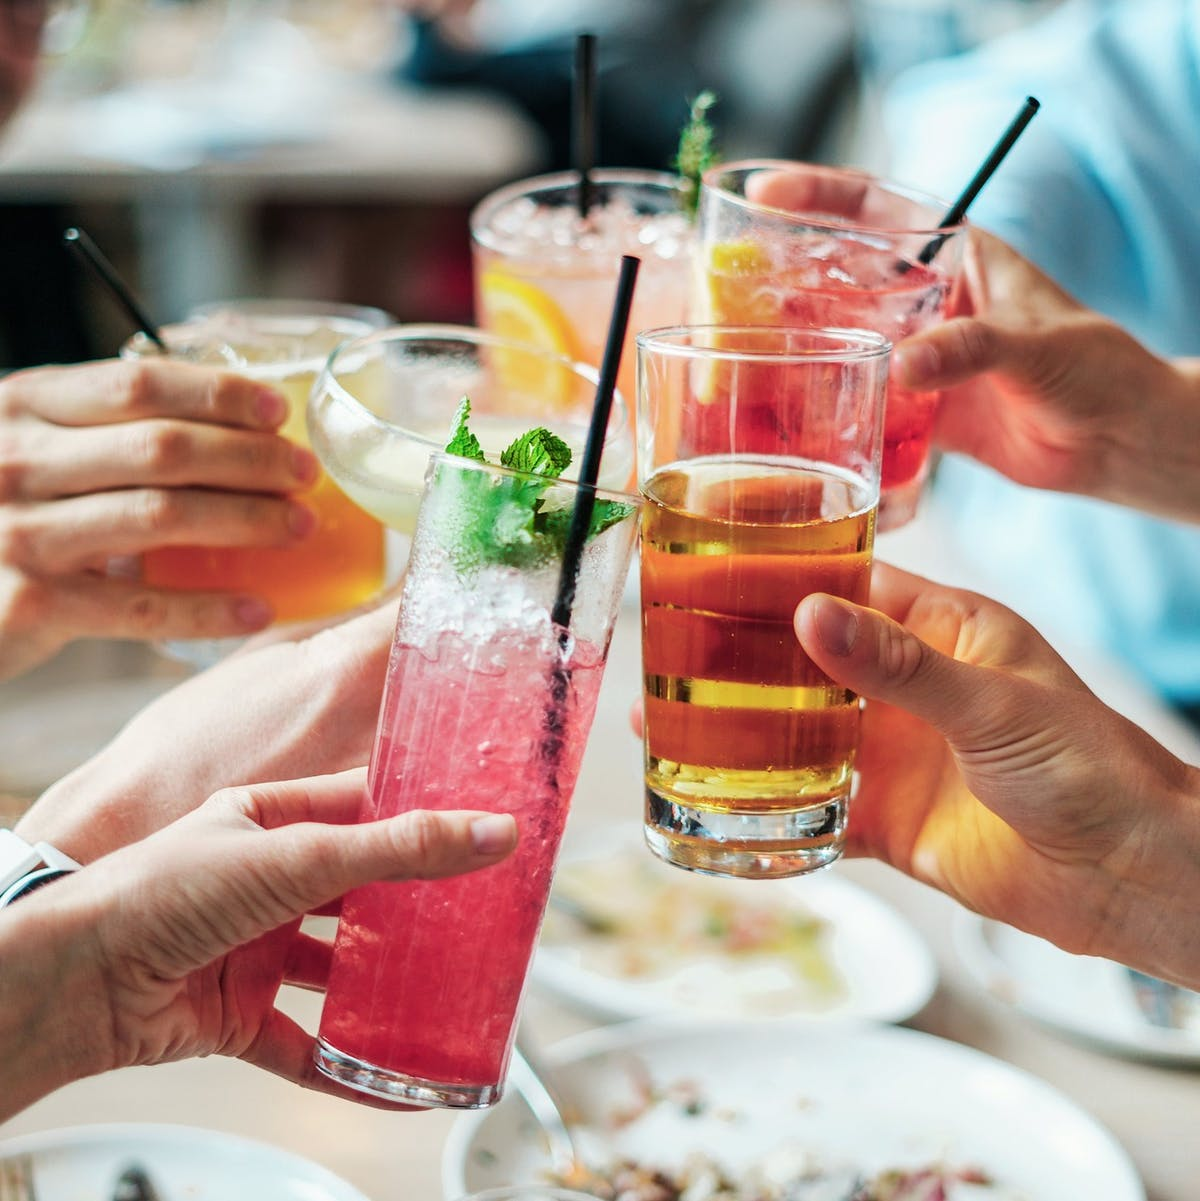 Hangovers: Scientists Debunk a Common Belief About Mixing Drinks